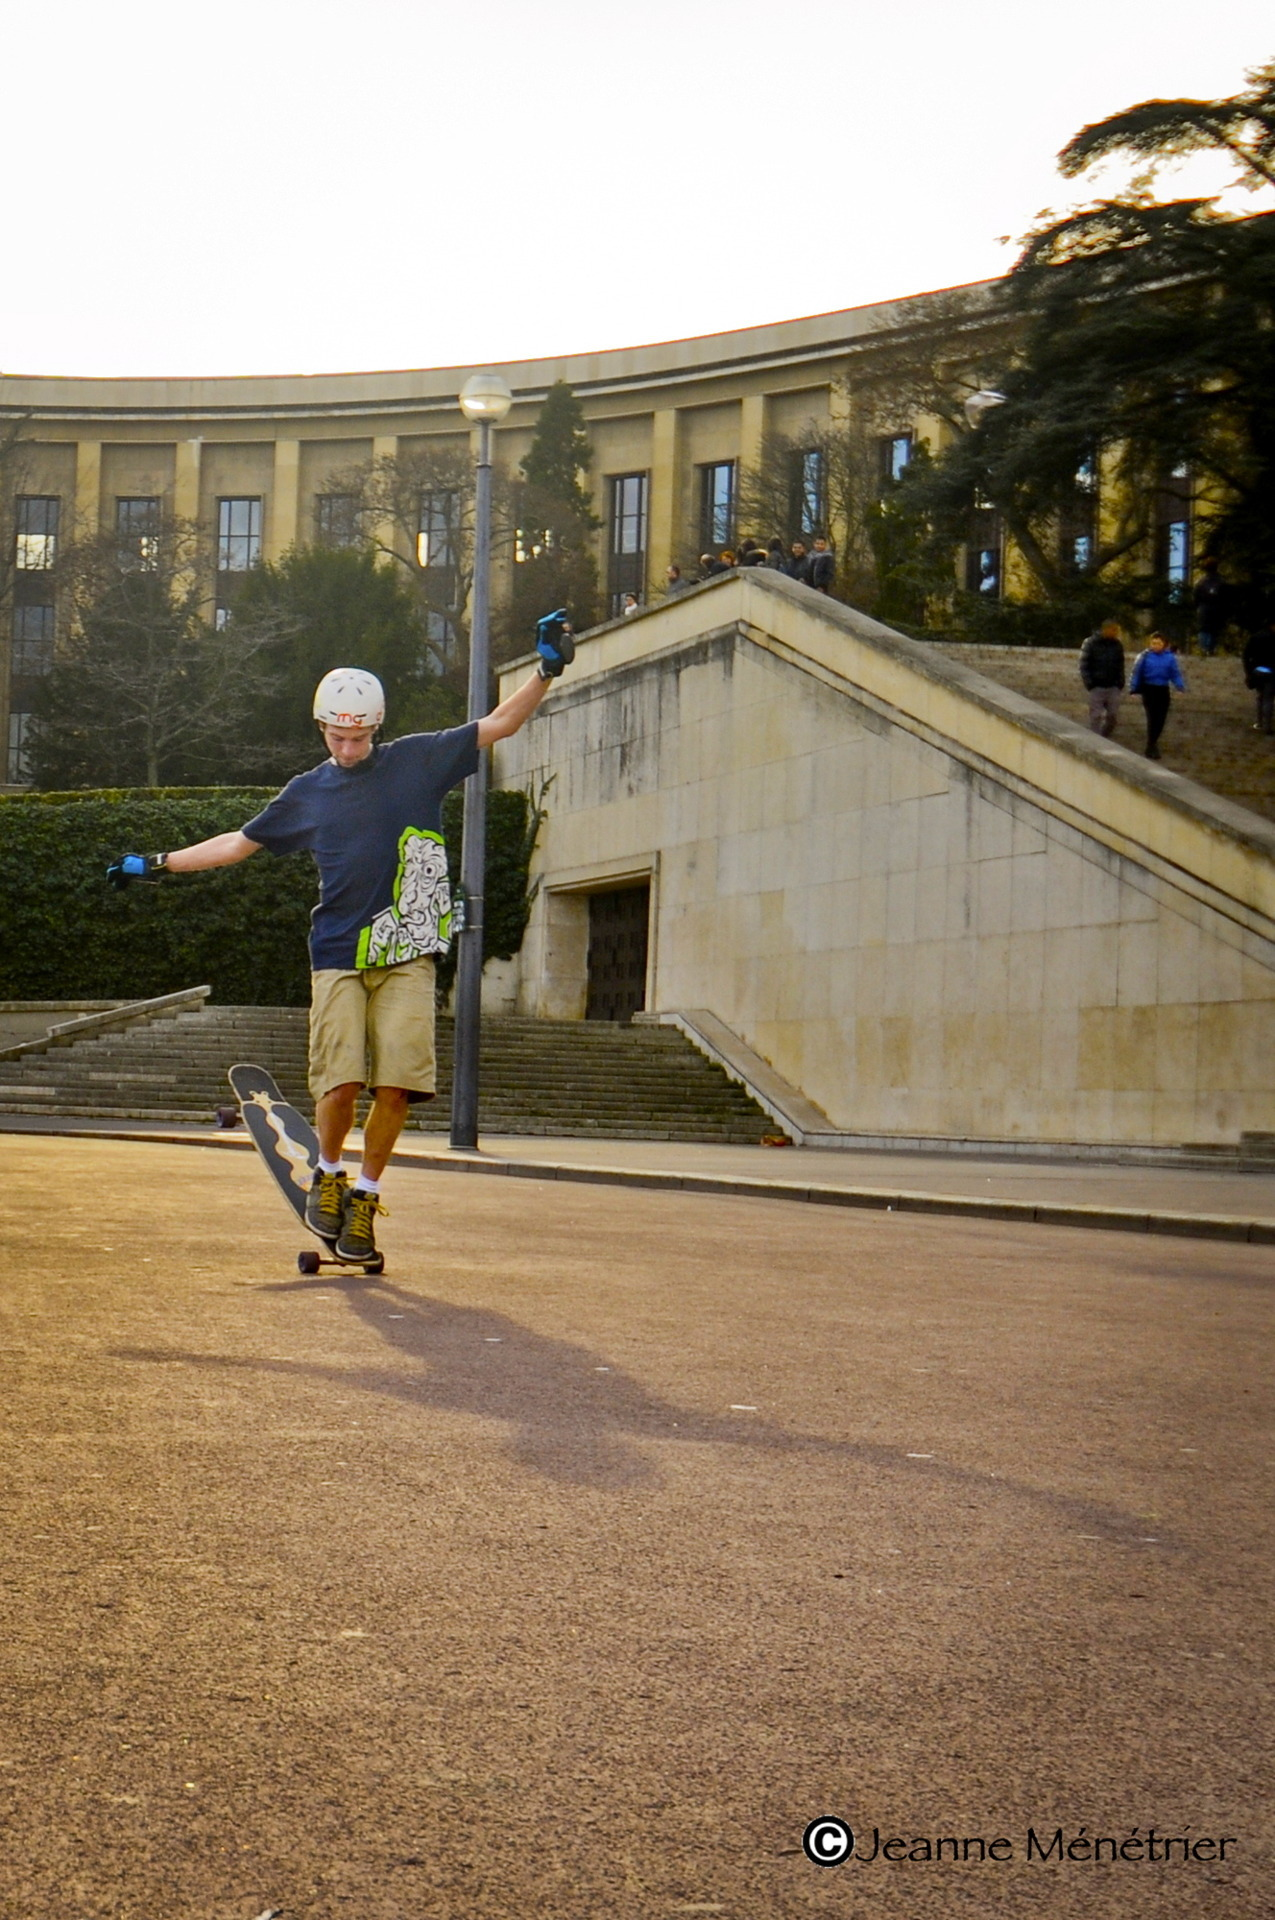 emgeemann:  Paris Hang Ten. Paris, France. Rider: Mike Girard. Photo: Jeanne Ménétrier.